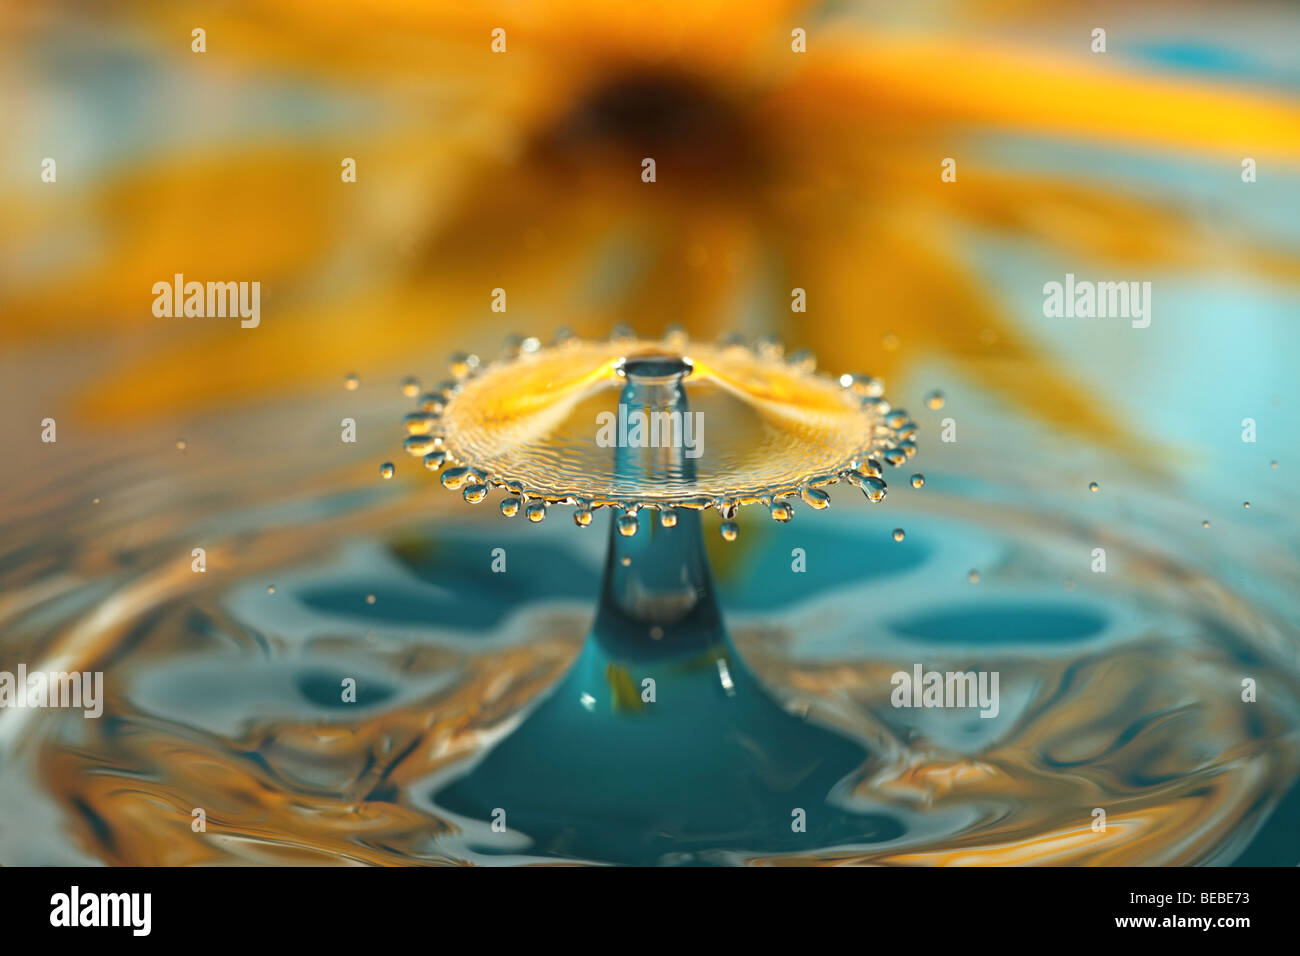 Water Drip - Stock Image